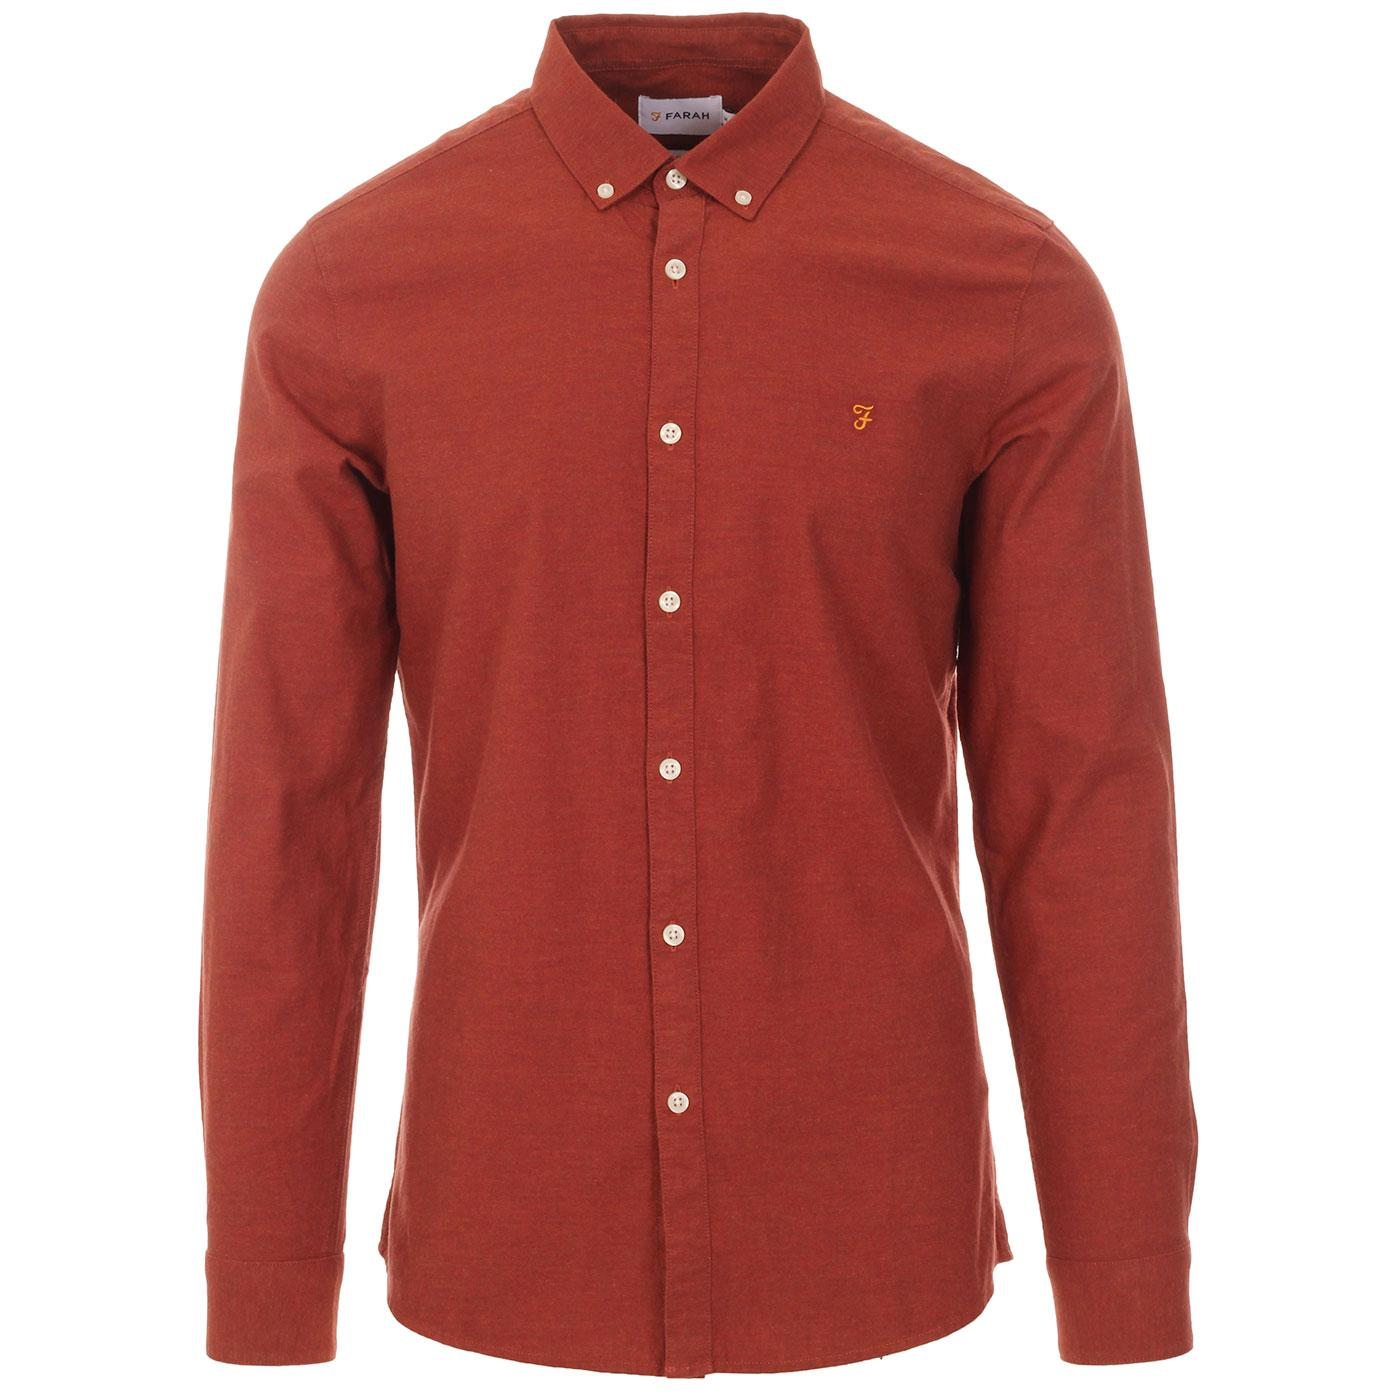 Steen FARAH 60s Mod Button Down Oxford Shirt (FR)